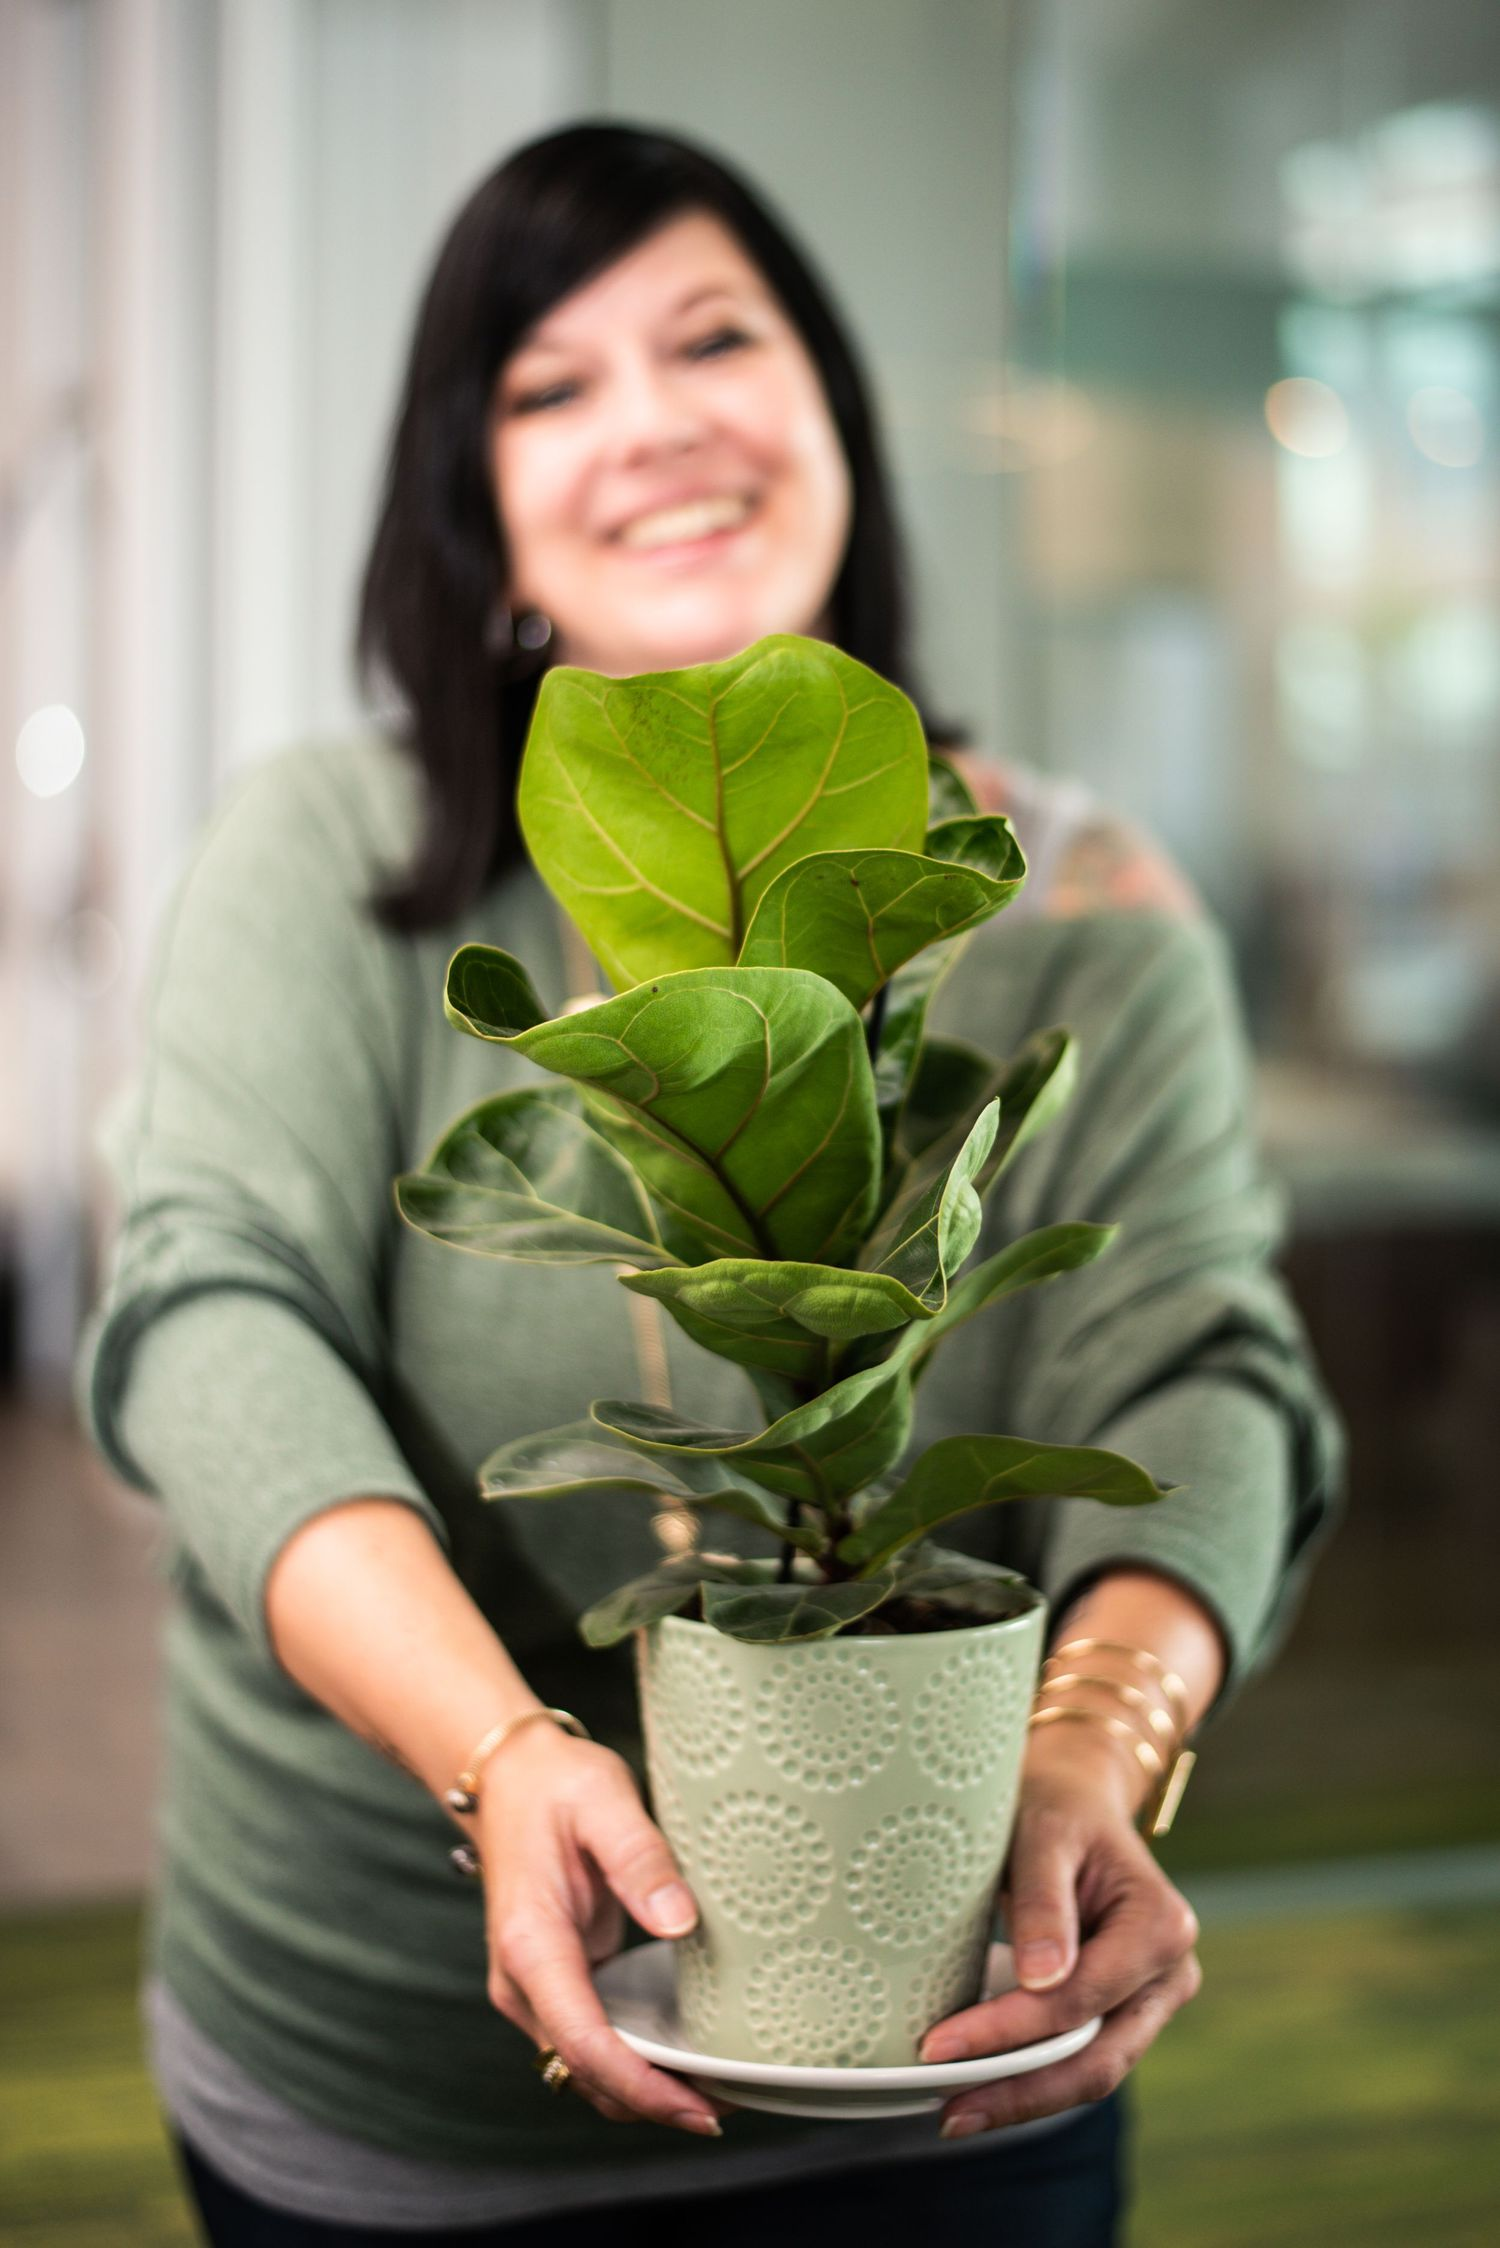 *Realtor in a Howard Hanna office with a fiddle leaf fig plant